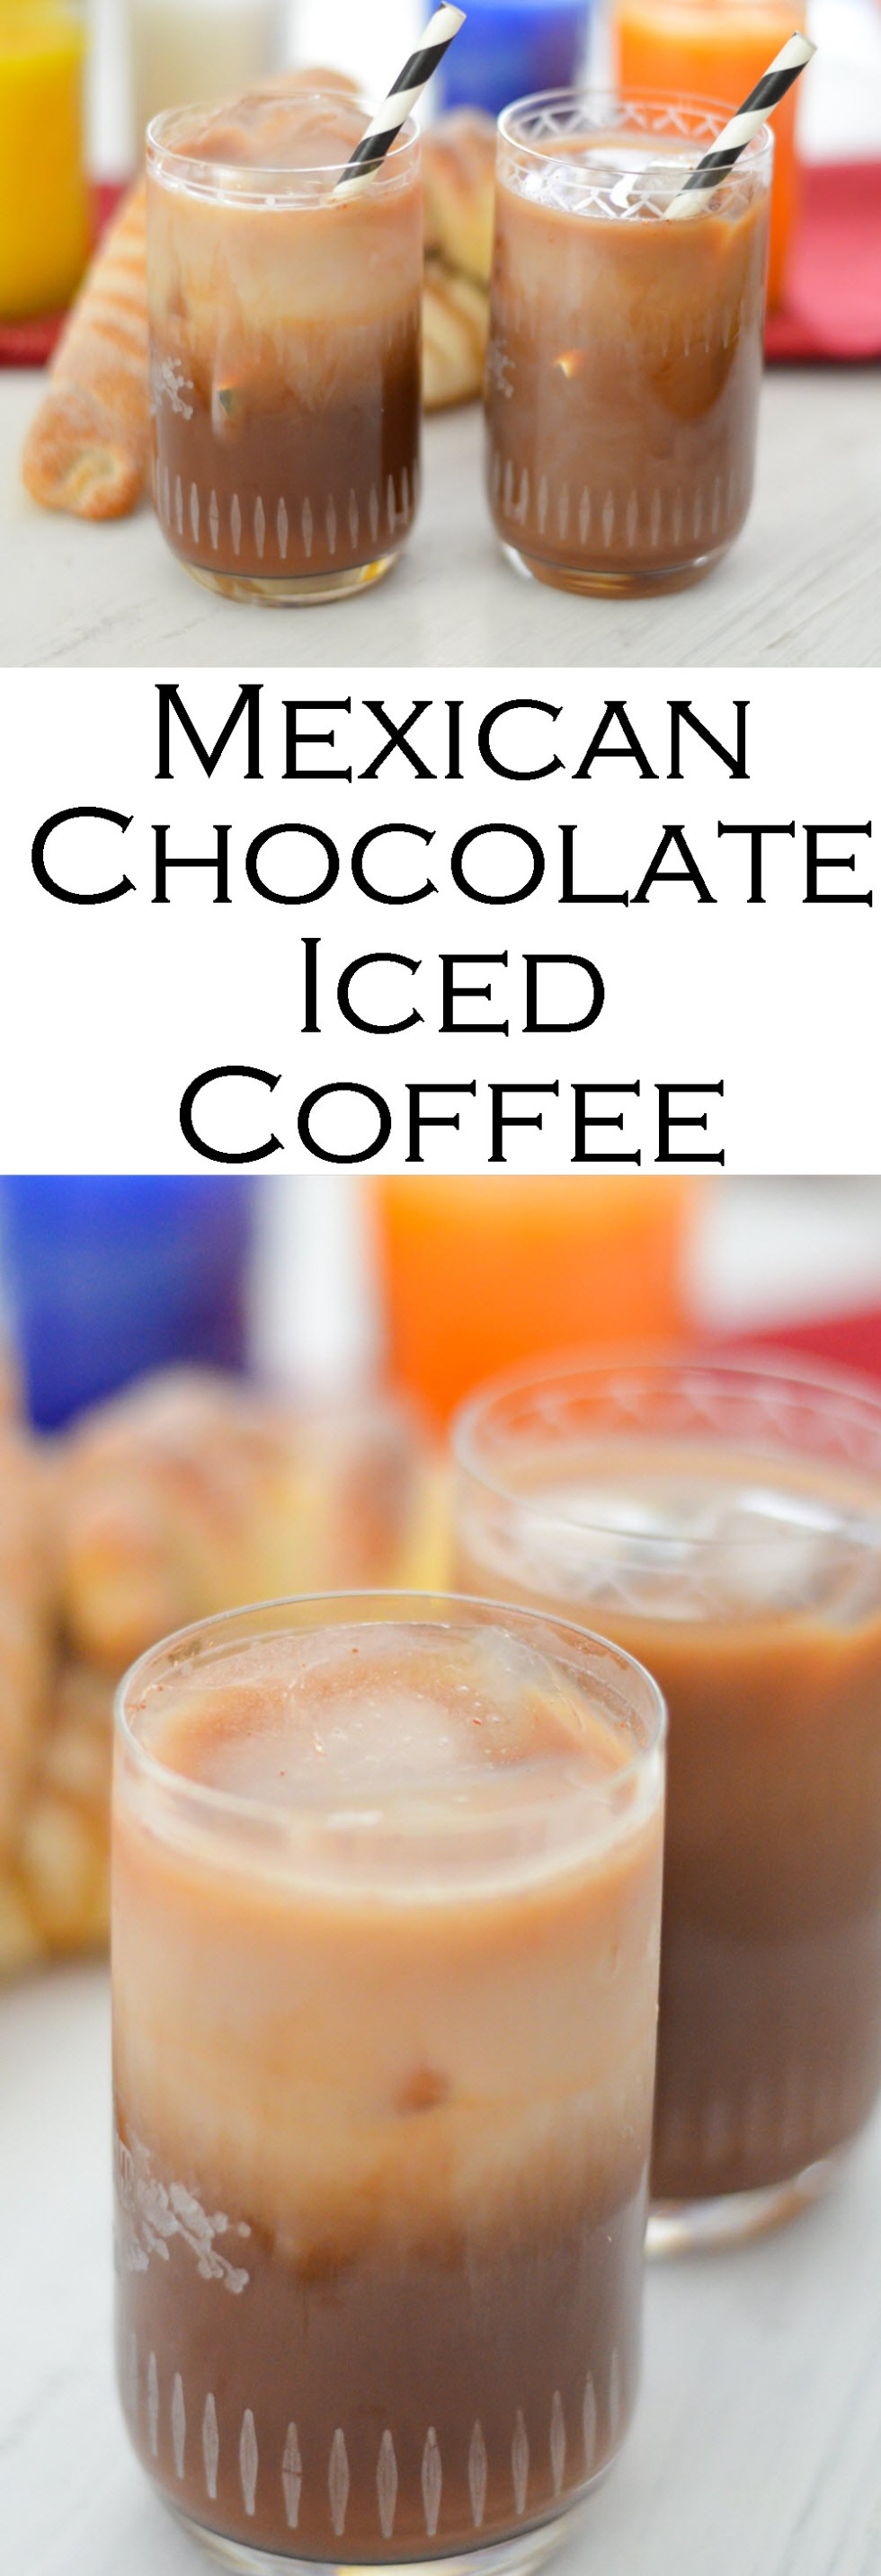 Mexican Chocolate Iced Coffee Recipe | Luci's Morsels